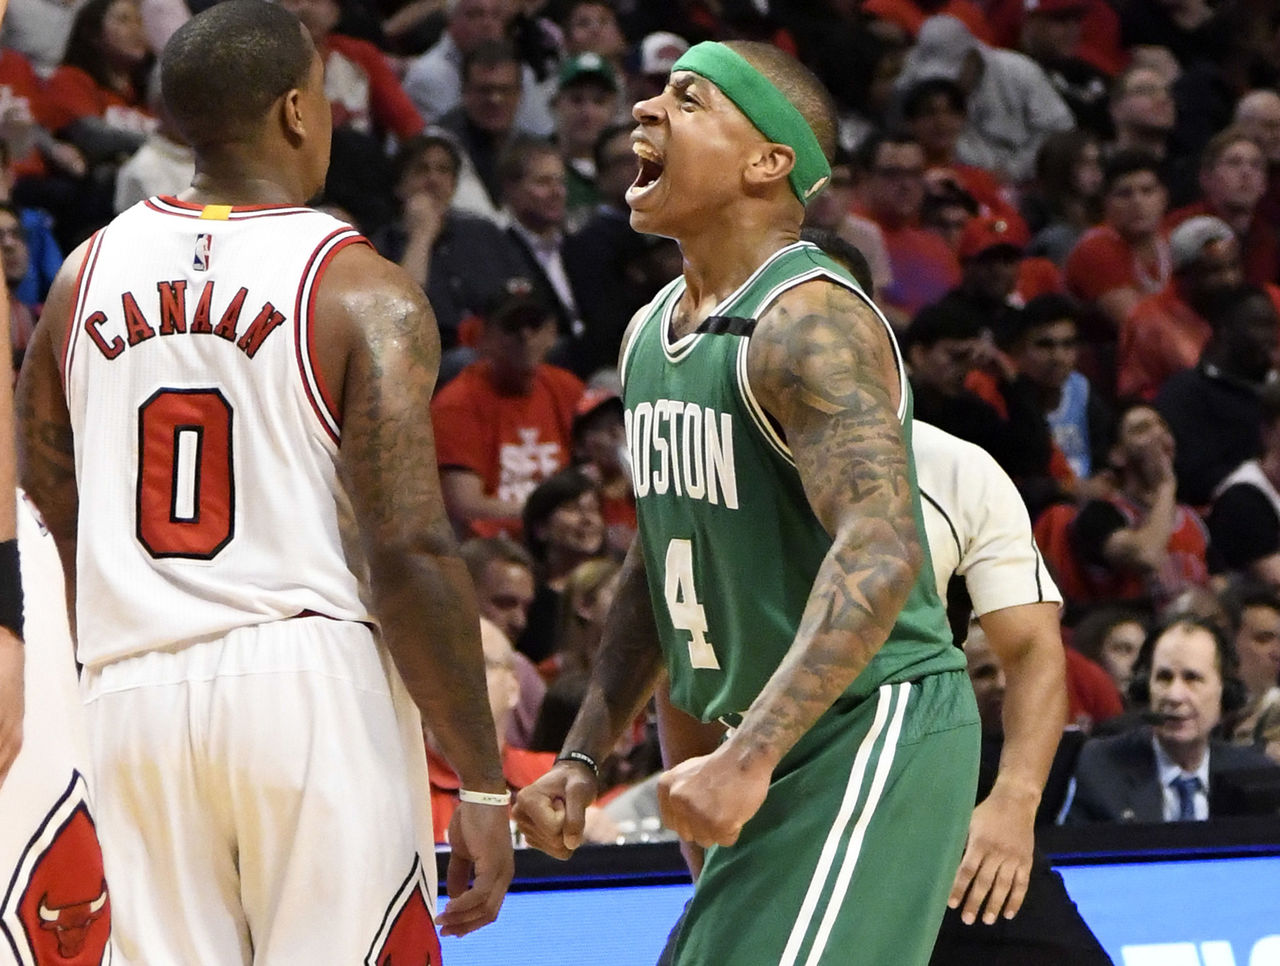 Cropped 2017 04 29t024439z 166957696 nocid rtrmadp 3 nba playoffs boston celtics at chicago bulls